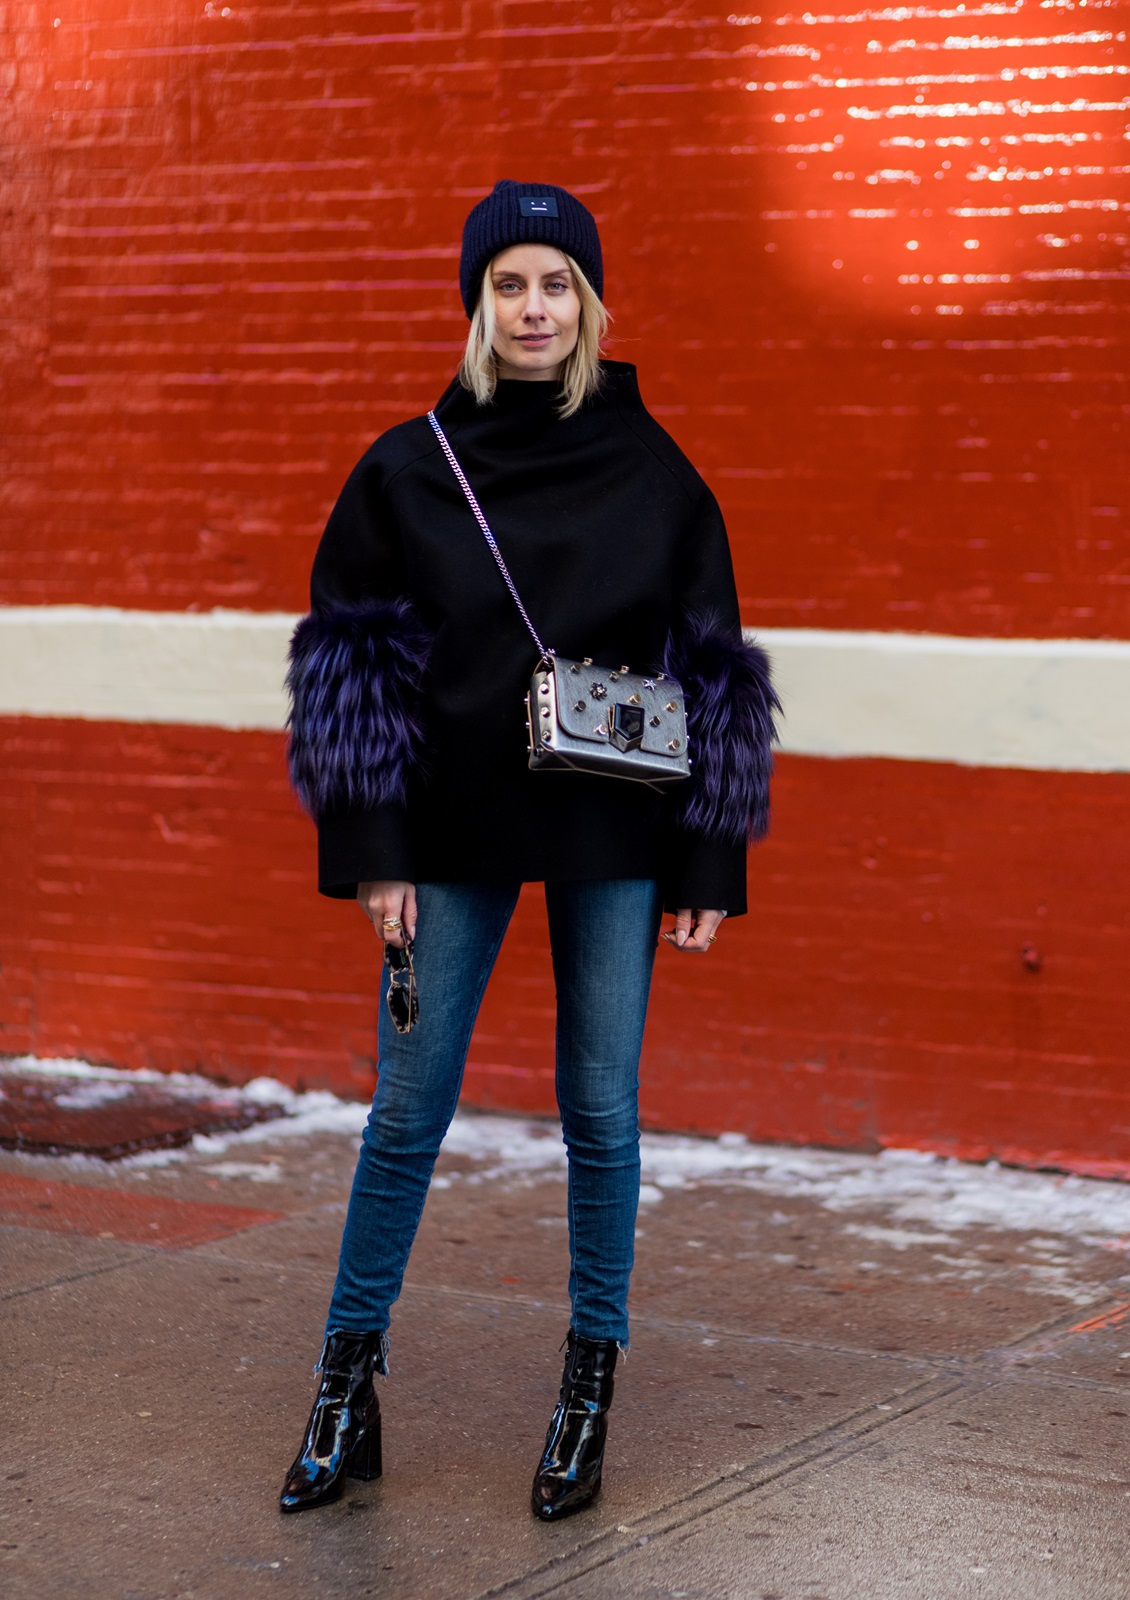 NEW YORK, NY - FEBRUARY 10: Lisa Hahnbueck wearing SAKS POTTS Black Felt Fox Fur Bille Jumper, JBRAND Carolina HIGHWAIST JEANS, ACNE PANSY BEANIE, MANGO NAPLACK BOOTS, JIMMY CHOO LOCKETT BAG on February 10, 2017 in New York City. (Photo by Christian Vierig/Getty Images) *** Local Caption *** Lisa Hahnbueck